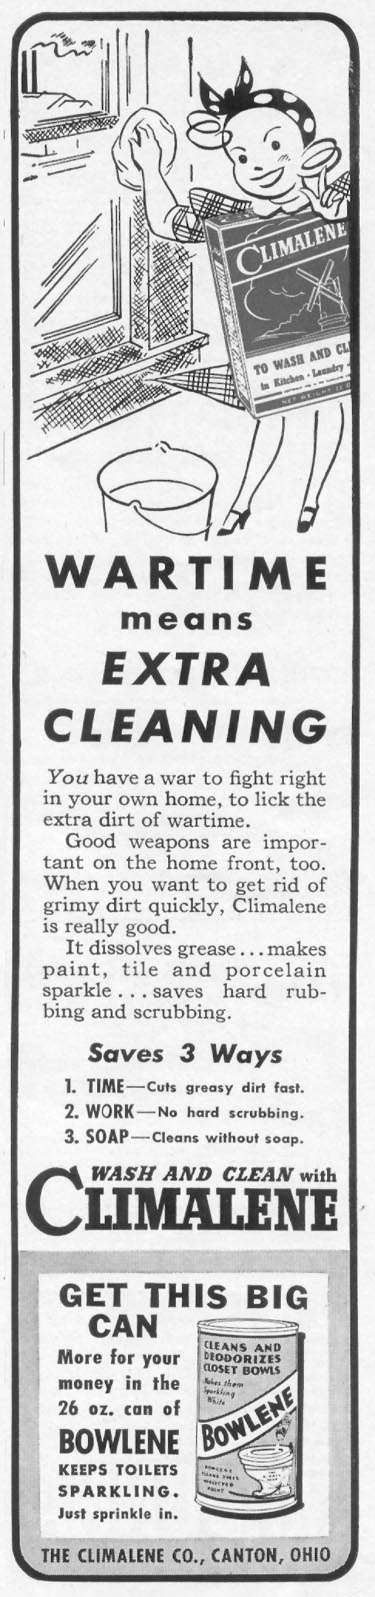 CLIMALENE HOUSEHOLD CLEANSER WOMAN'S DAY 09/01/1942 p. 73